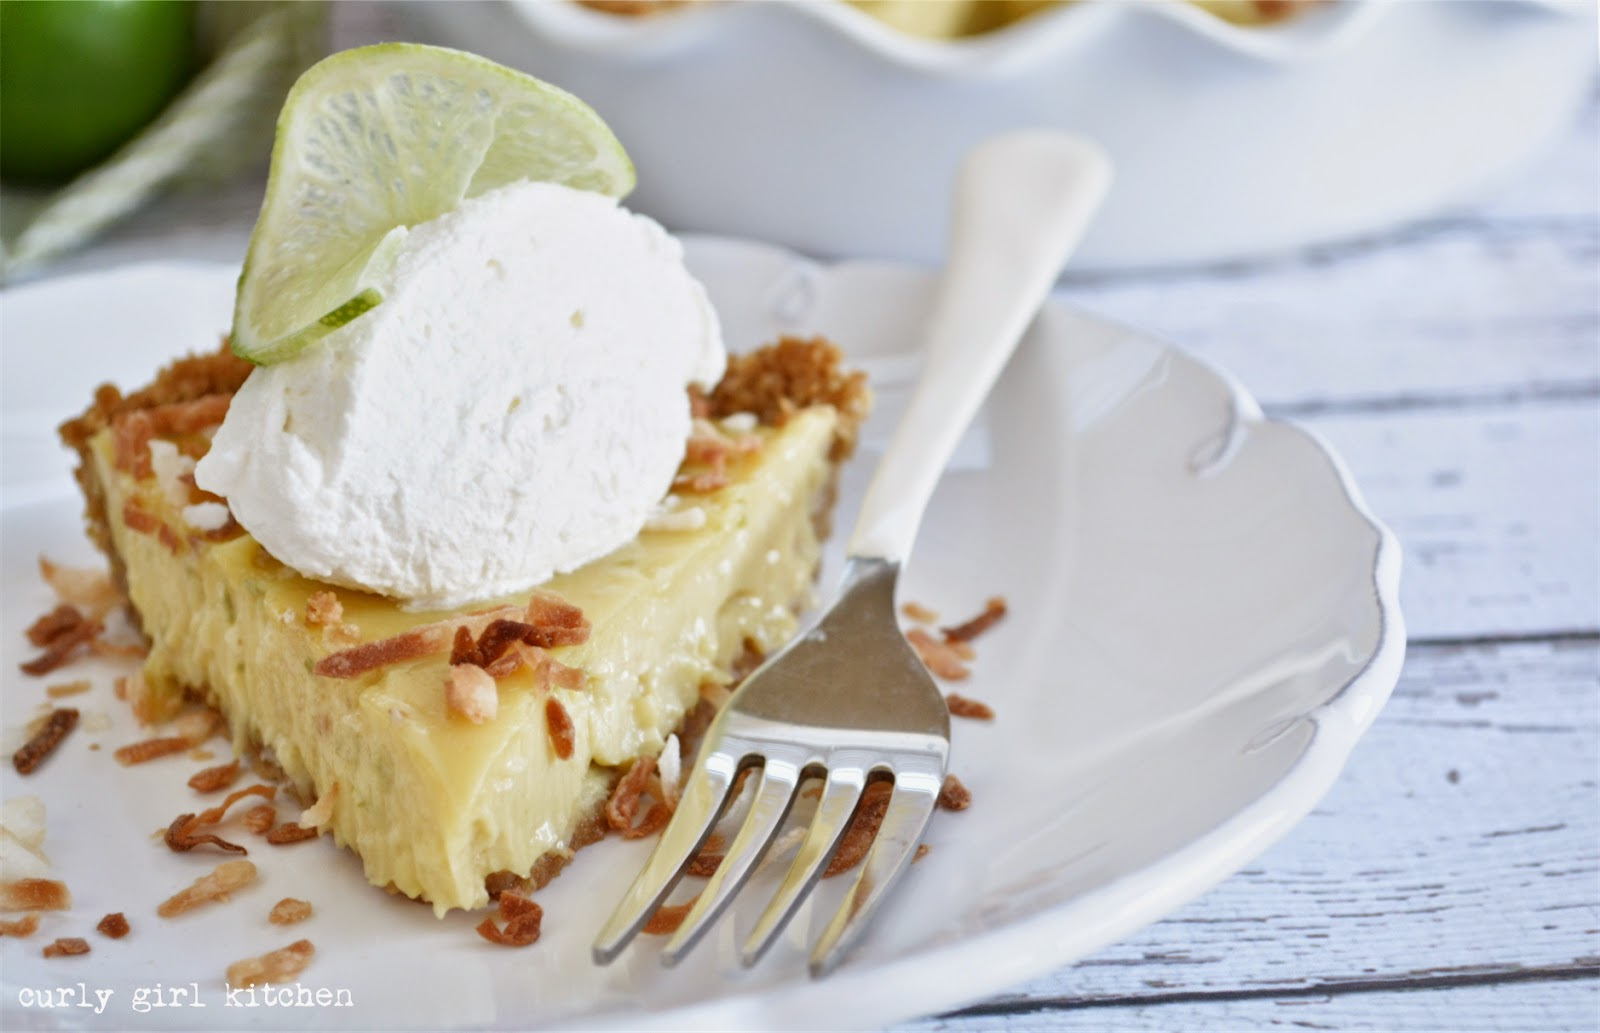 Curly Girl Kitchen: Coconut Crunch Key Lime Pie and a Key Lime Pie ...